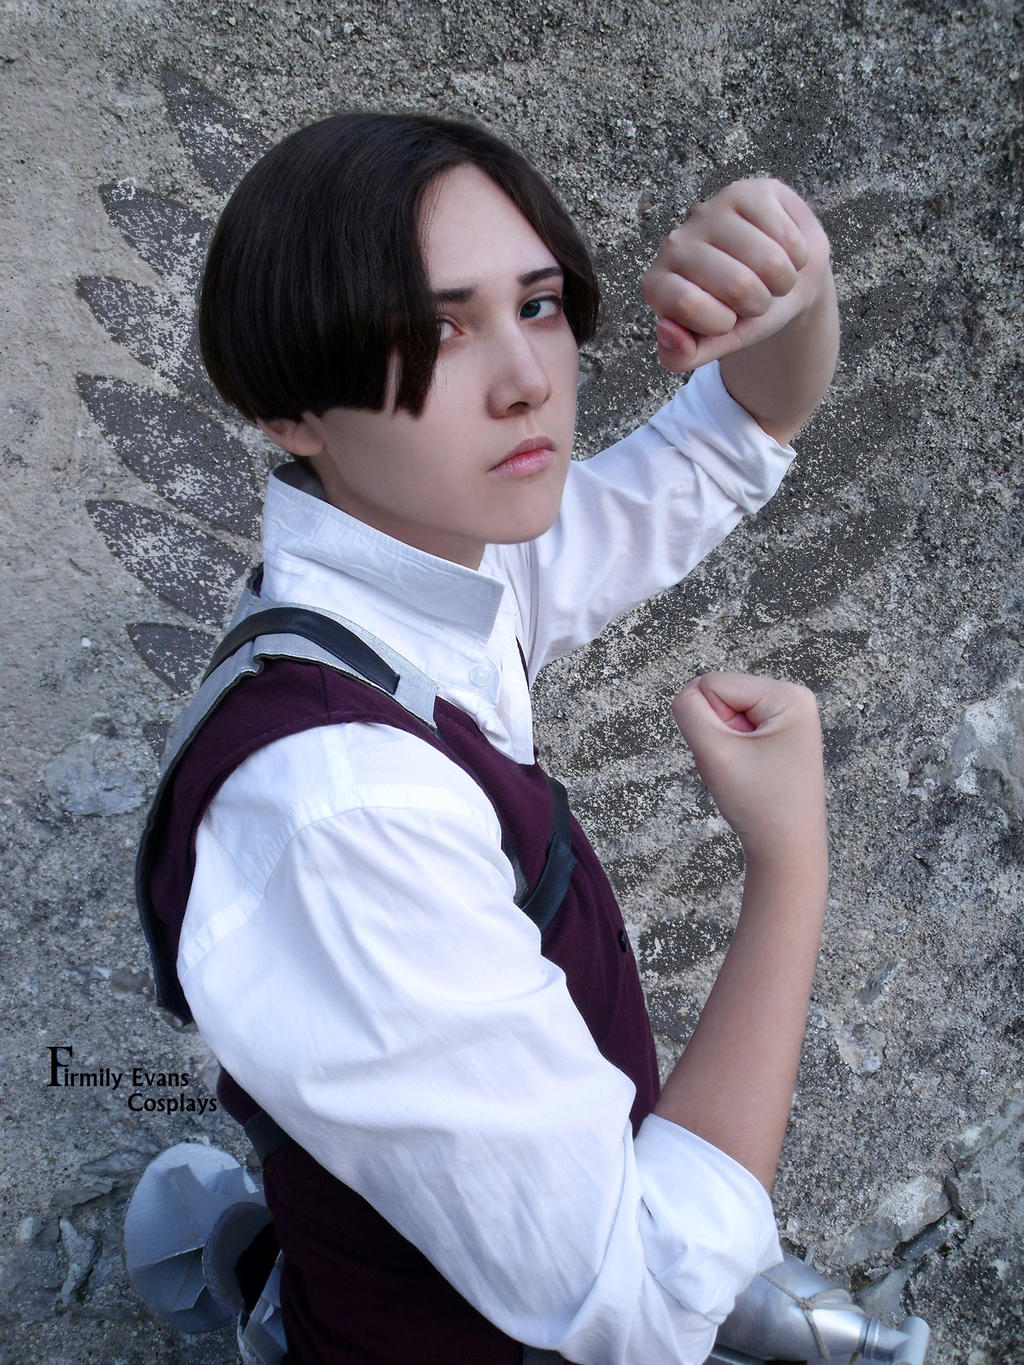 Levi cosplay - Attack on titan OAV by Firmily on DeviantArt